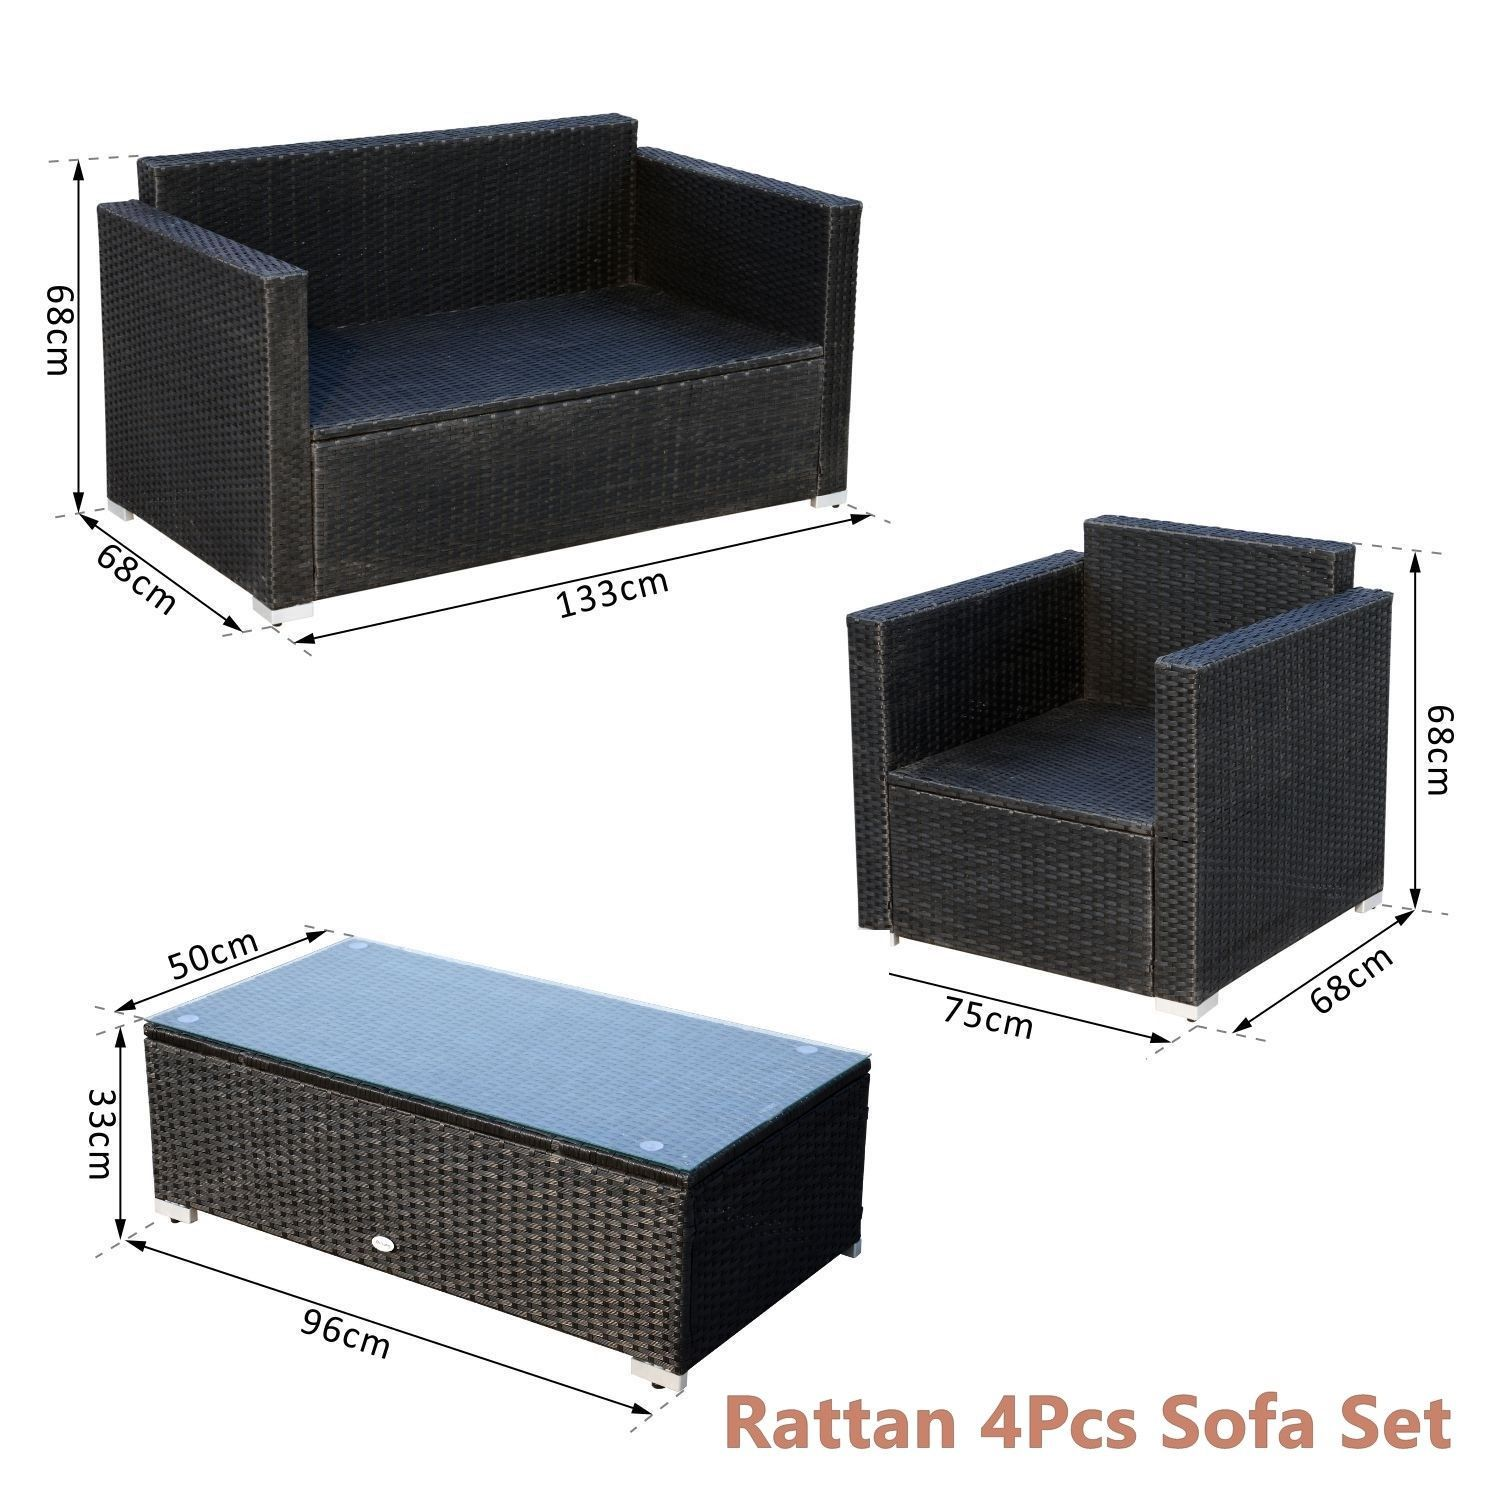 Rattan Sofa Cushioned Set Garden Wicker Glass Top Table Armchairs 4Pcs Black New image 7